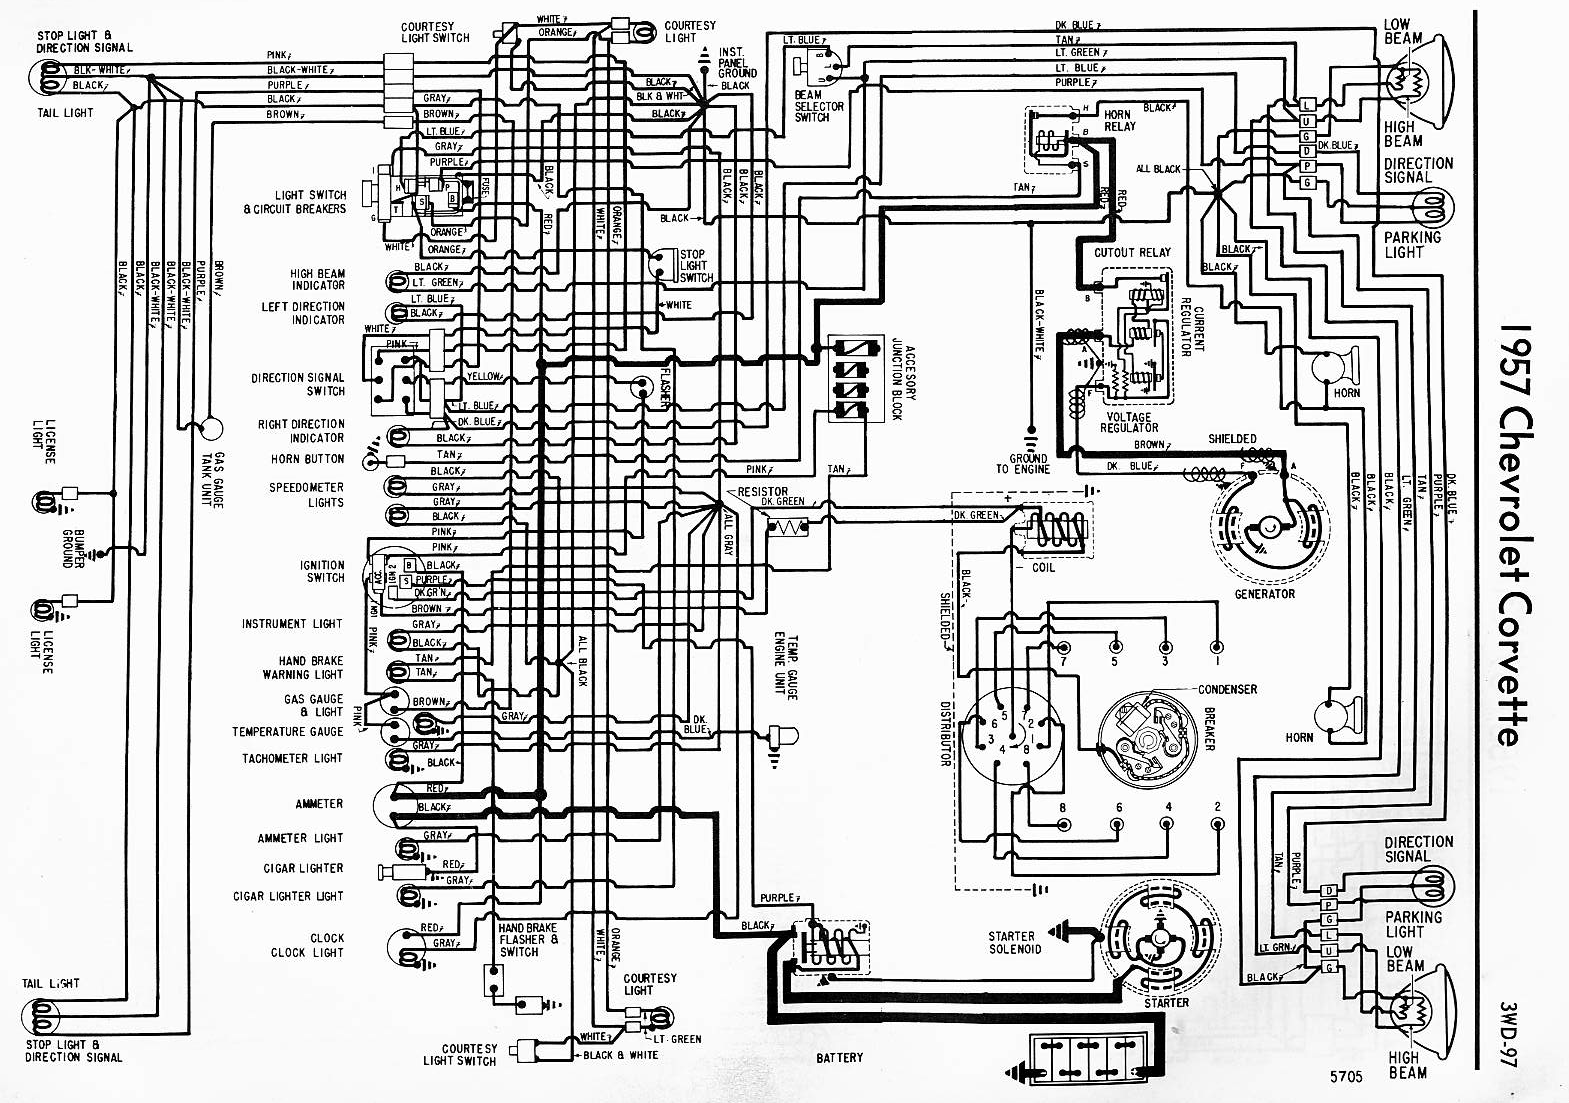 57 corvettte tracer schematic best one 1957 corvette wiring diagram willcox corvette, inc 1971 corvette wiring diagram at panicattacktreatment.co